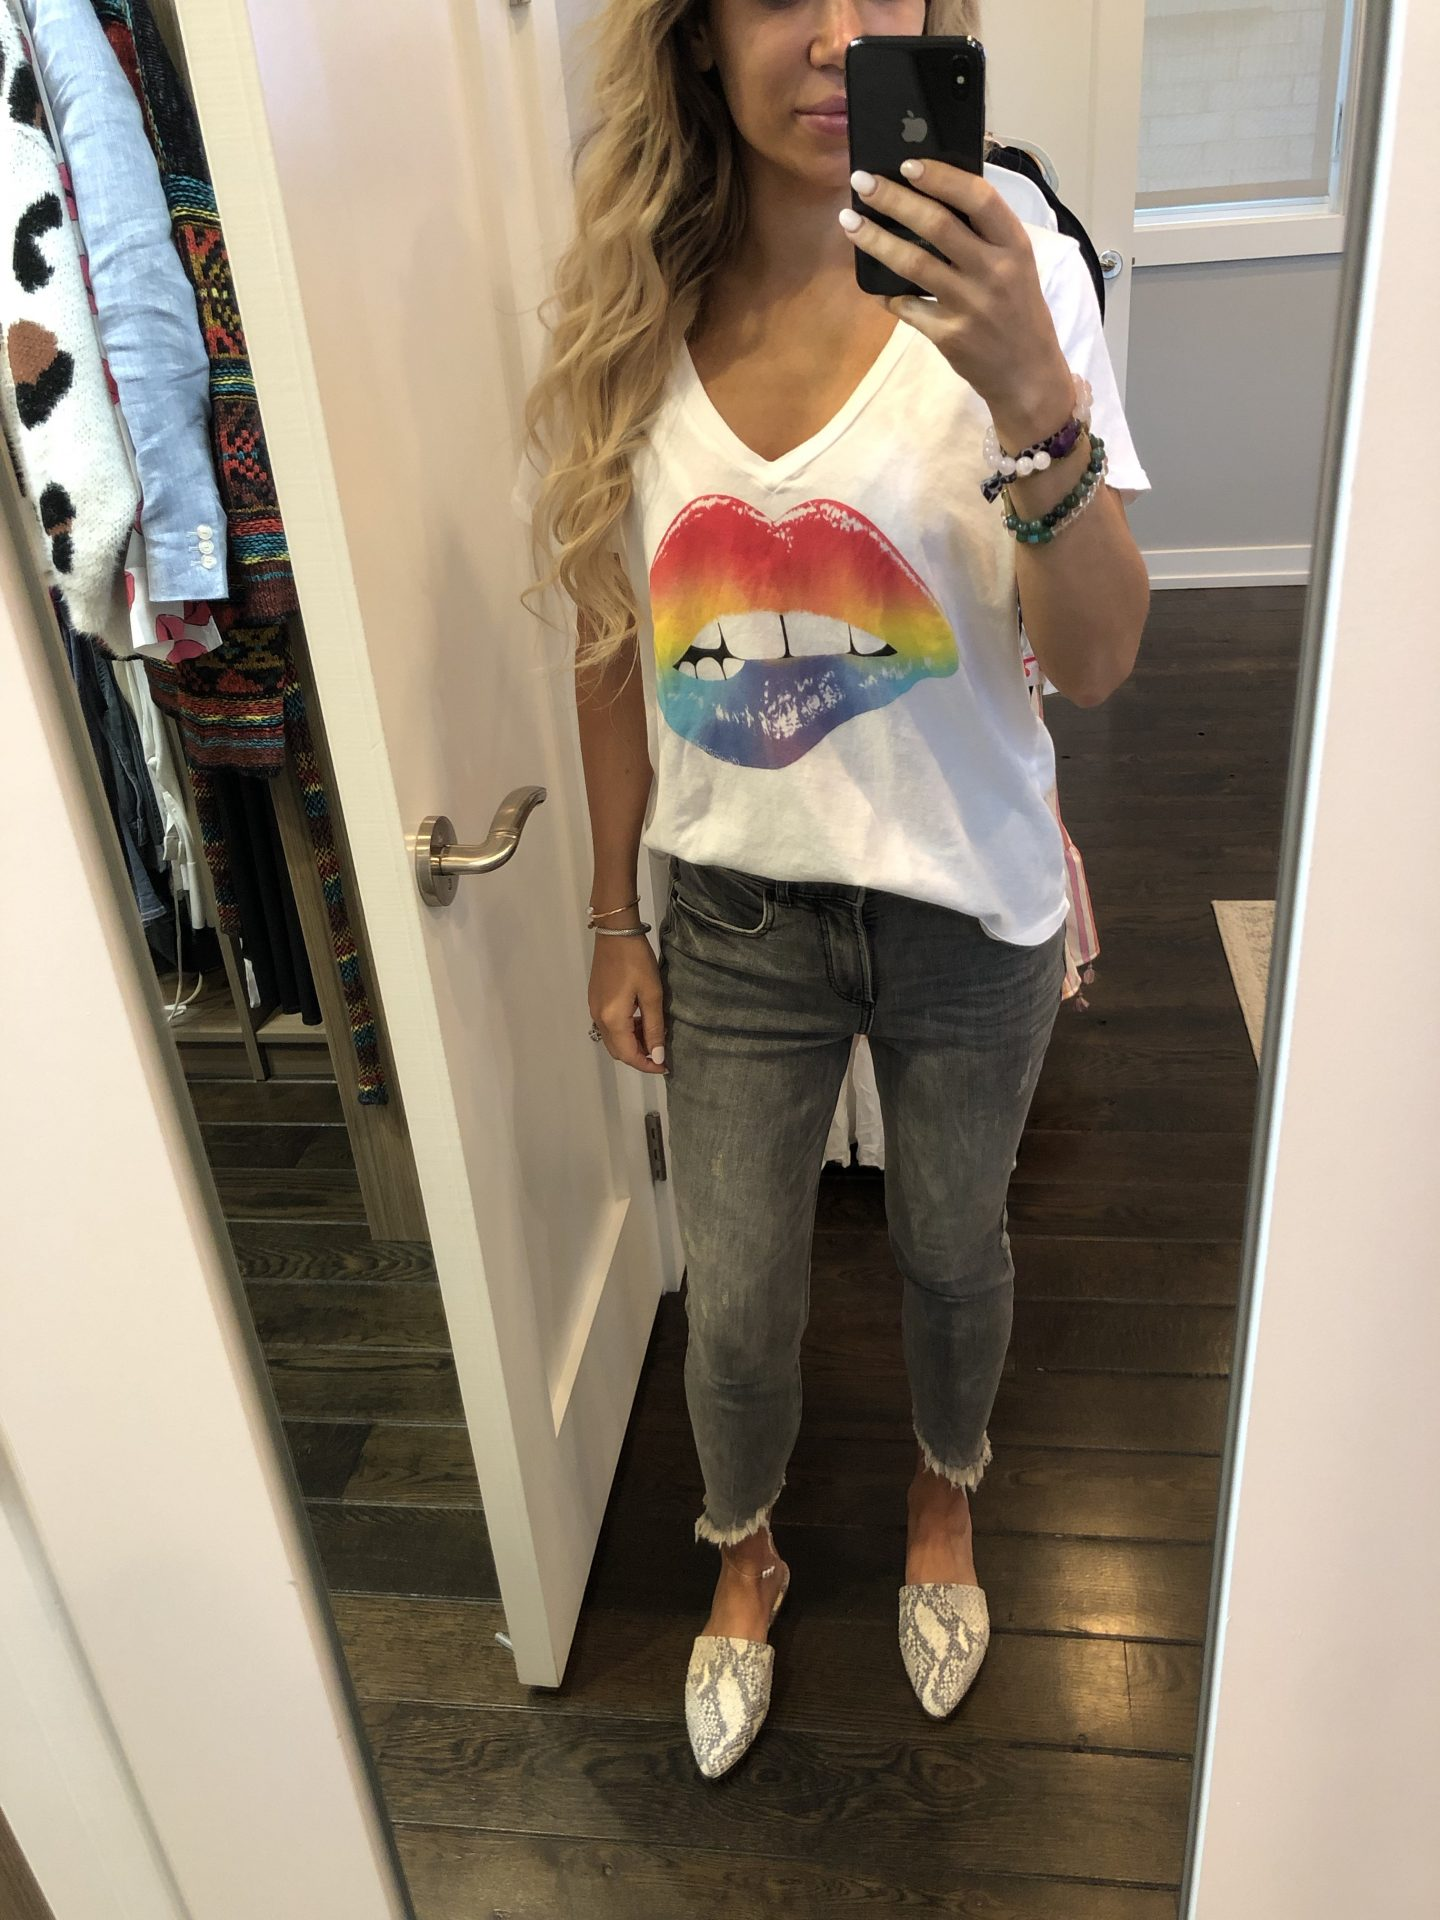 graphic tees, band tee, mom style, mommy blogger, mom blogger, mom influencer, casual style, tee shirt style, best tee shirt finds, Chicago influencer, fashion blogger, travel blogger